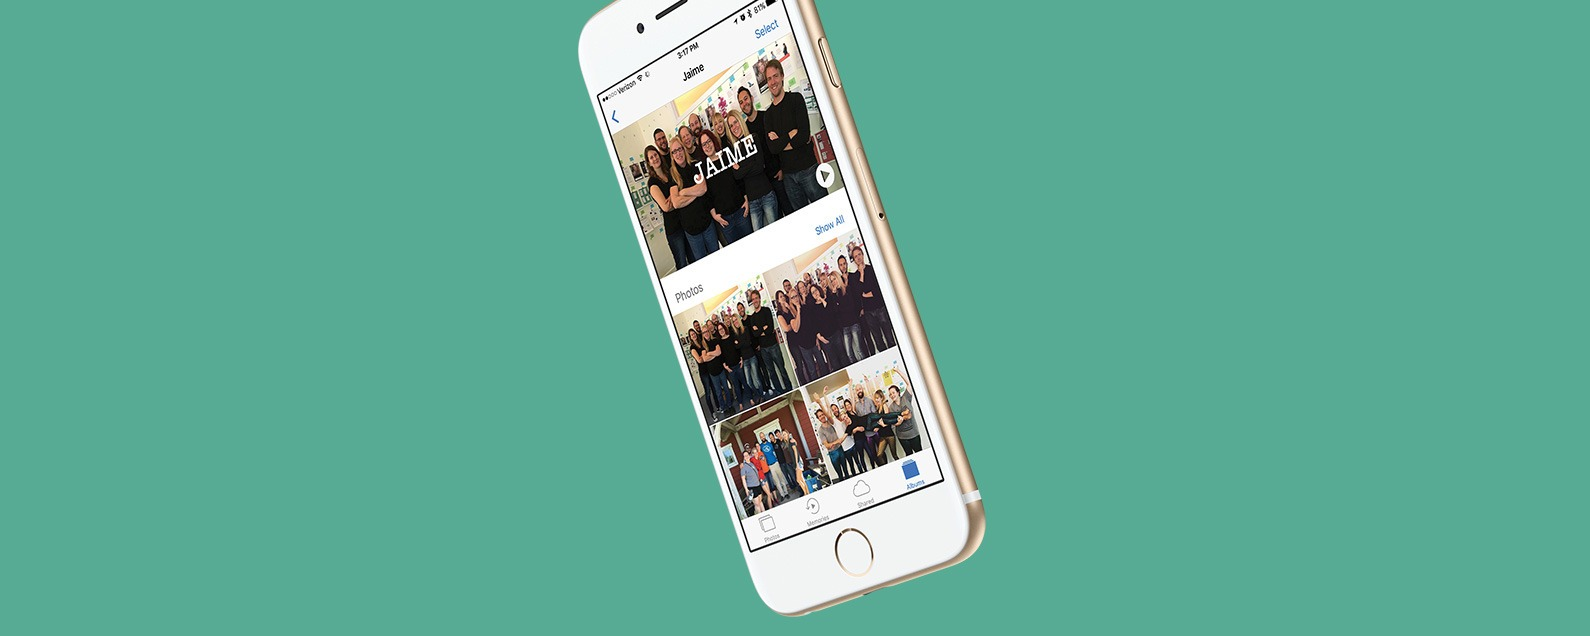 How to Add a Name to the People Album in Photos on iPhone